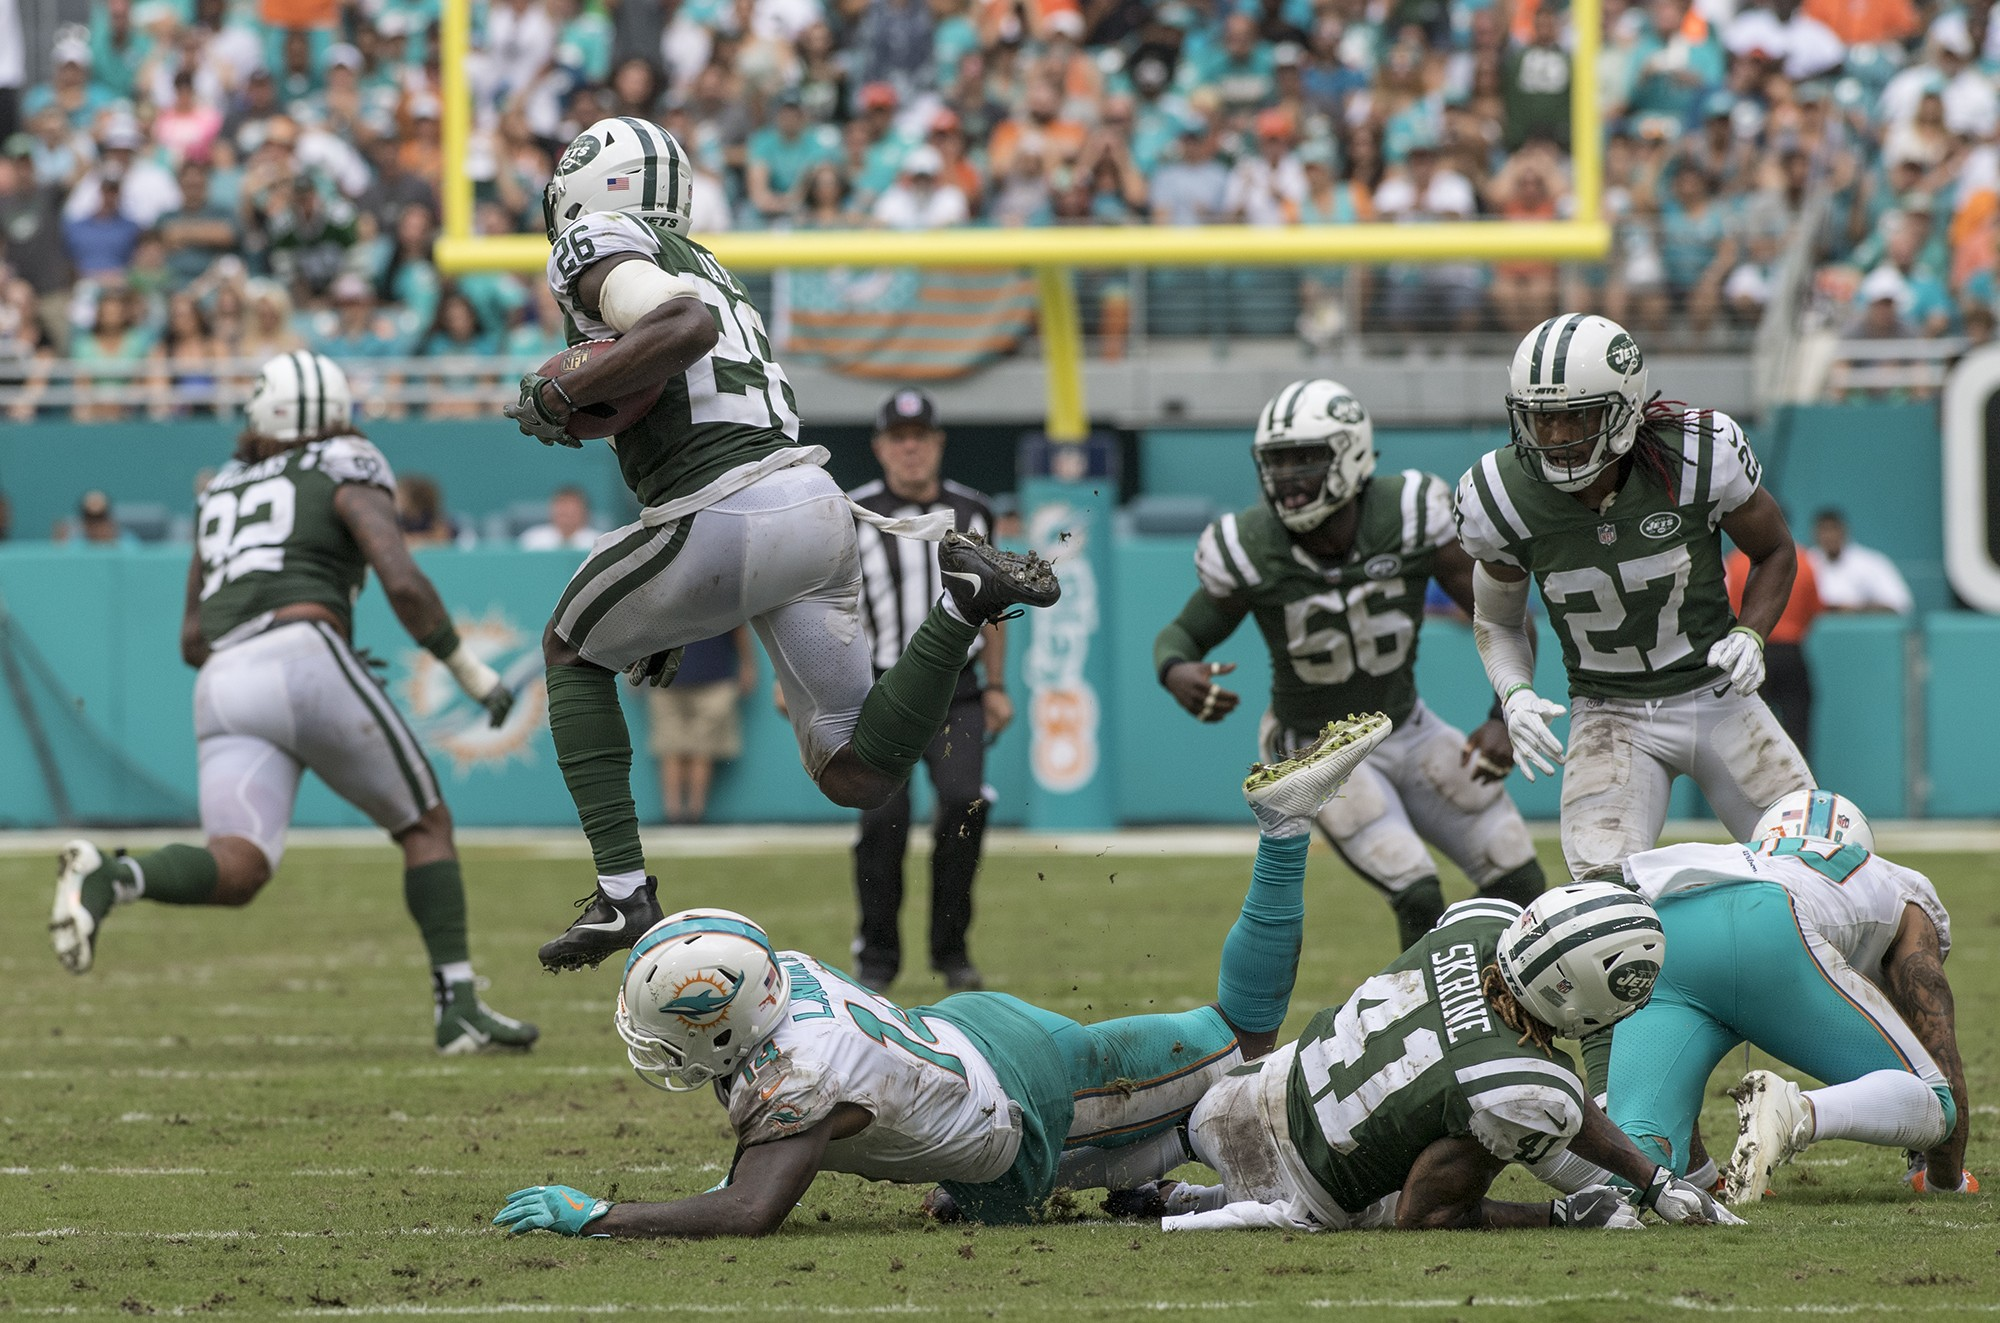 New York Jets free safety Marcus Maye (26) lisped over Miami Dolphins wide receiver Jarvis Landry (14) after an interception during 2nd half play of an NFL football game on Sunday, Oct. 22, 2017, in Miami Gardens, Fla. The Miami Dolphins went on to defeat the New York Jets 31-28. (Donald Edgar/El Latino Digital)